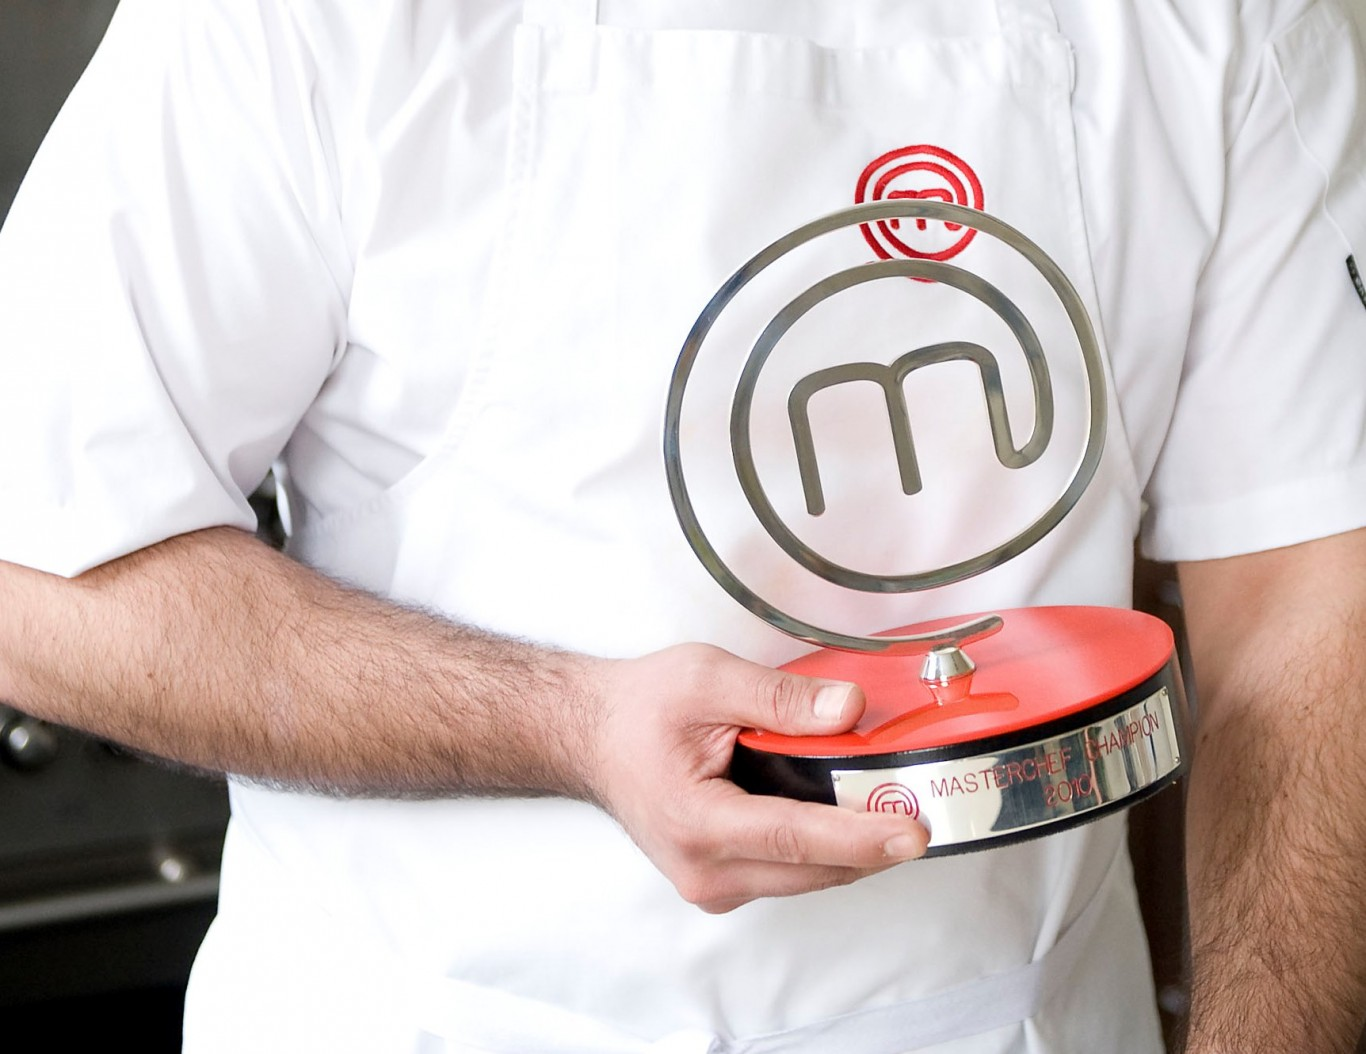 Masterchef trophy